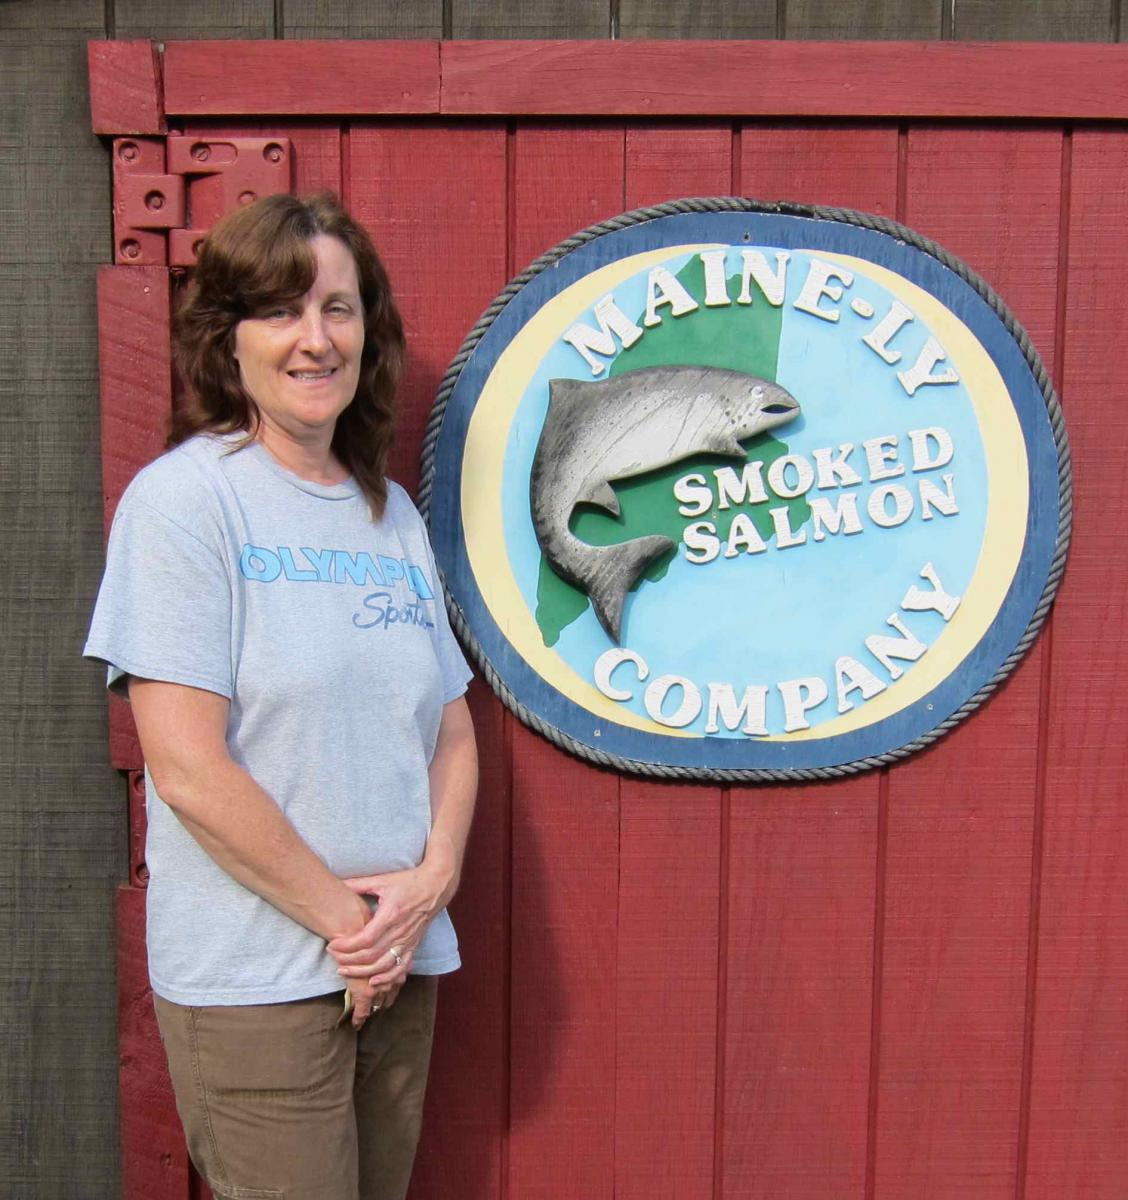 Karen Constant standing next to Mainely Smoked salmon sign